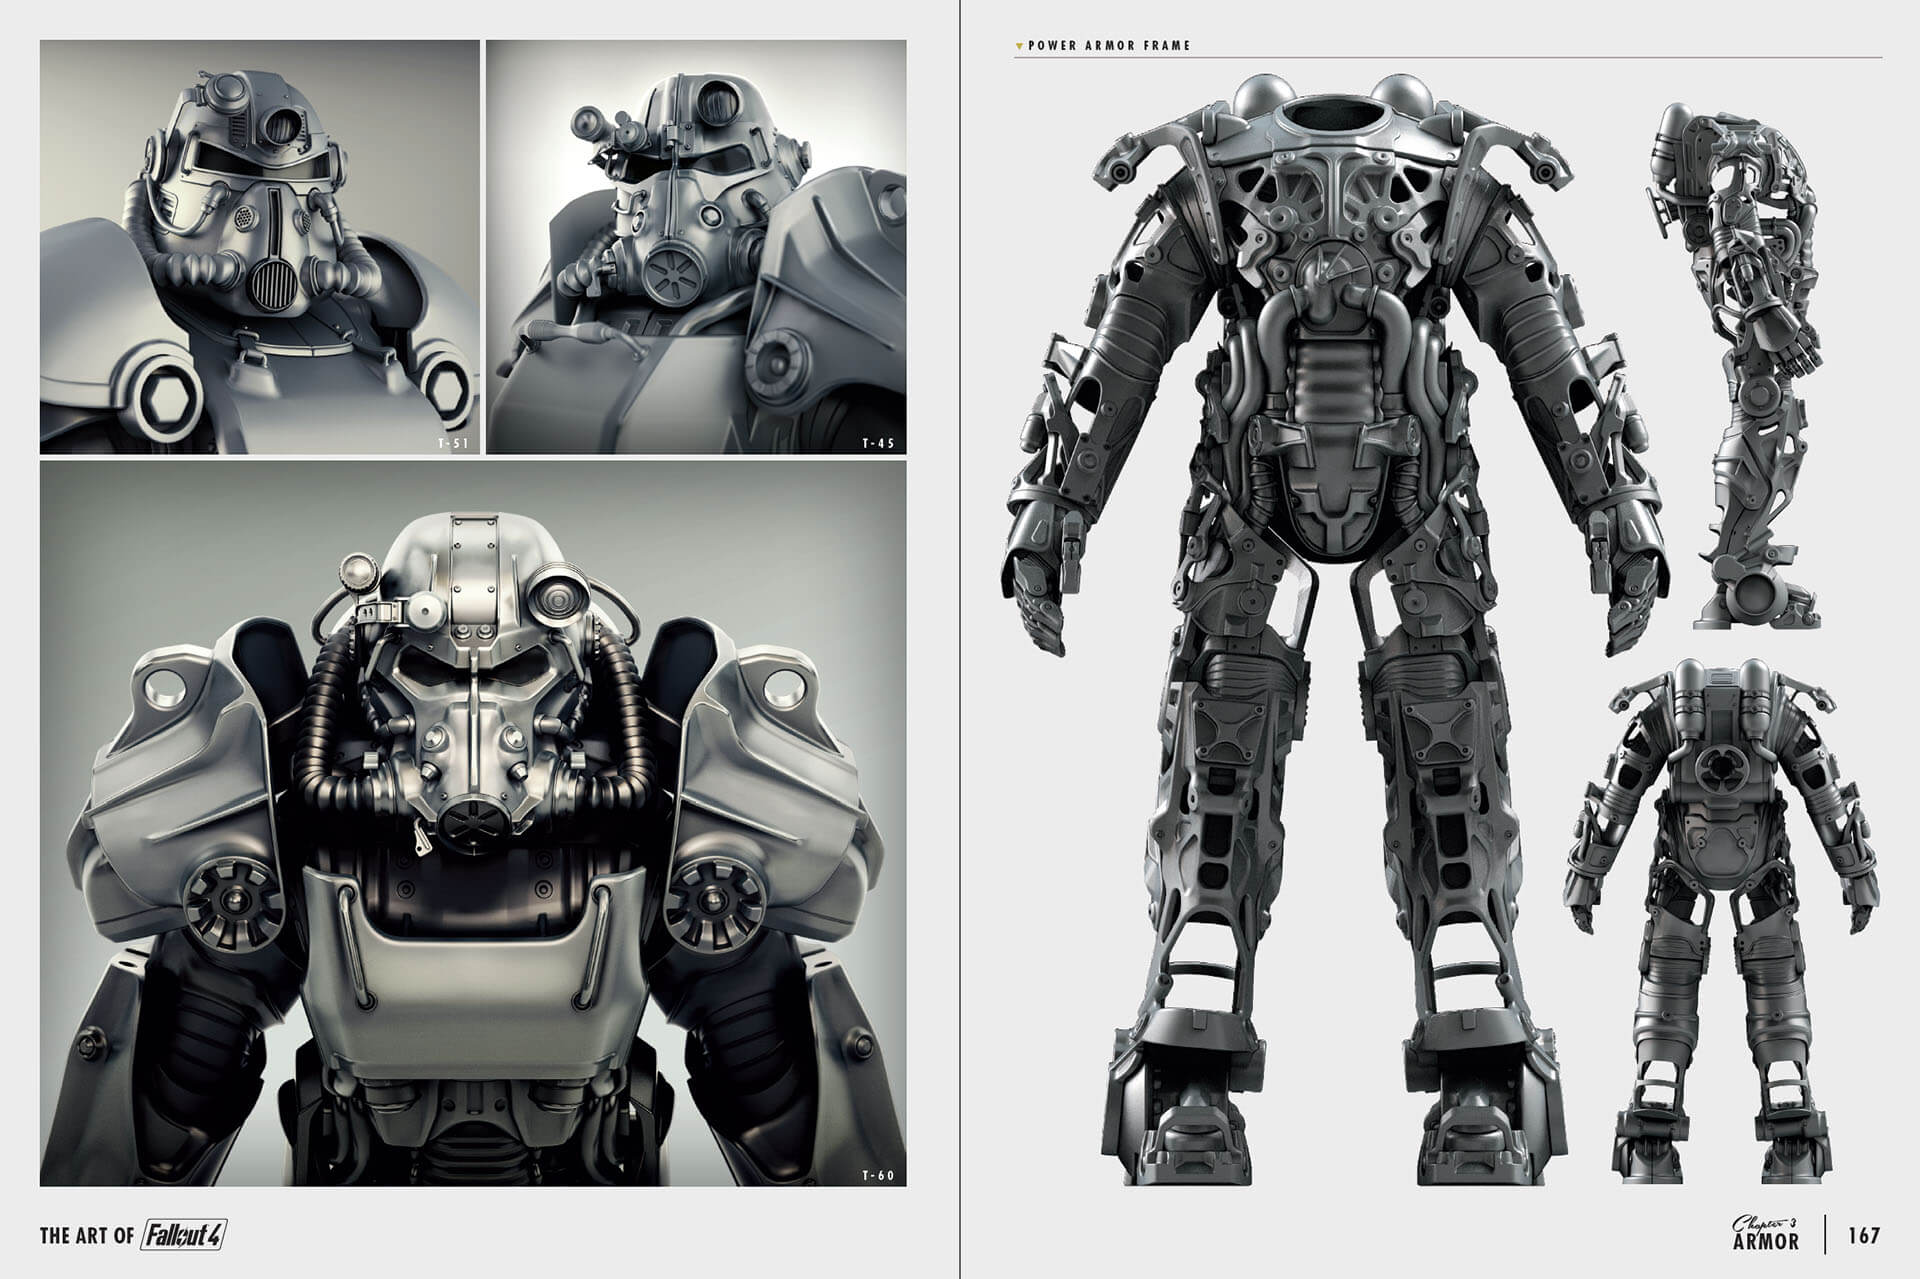 Image art of fo4 power armor concept artg fallout wiki art of fo4 power armor concept artg malvernweather Images